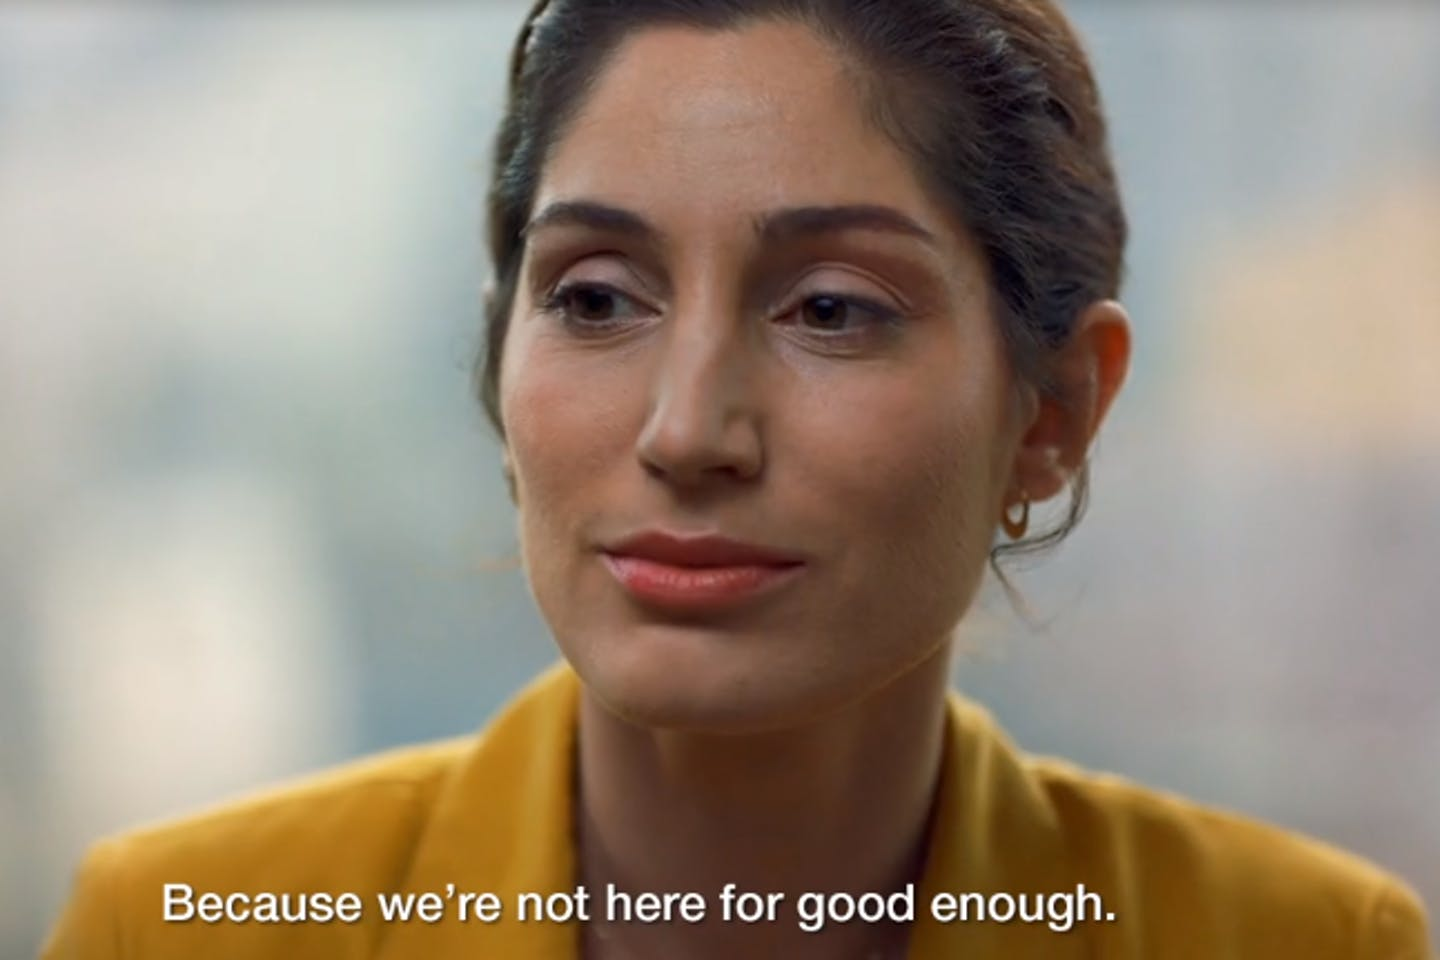 Standard Chartered Bank advertisement. 'We're hear for good'